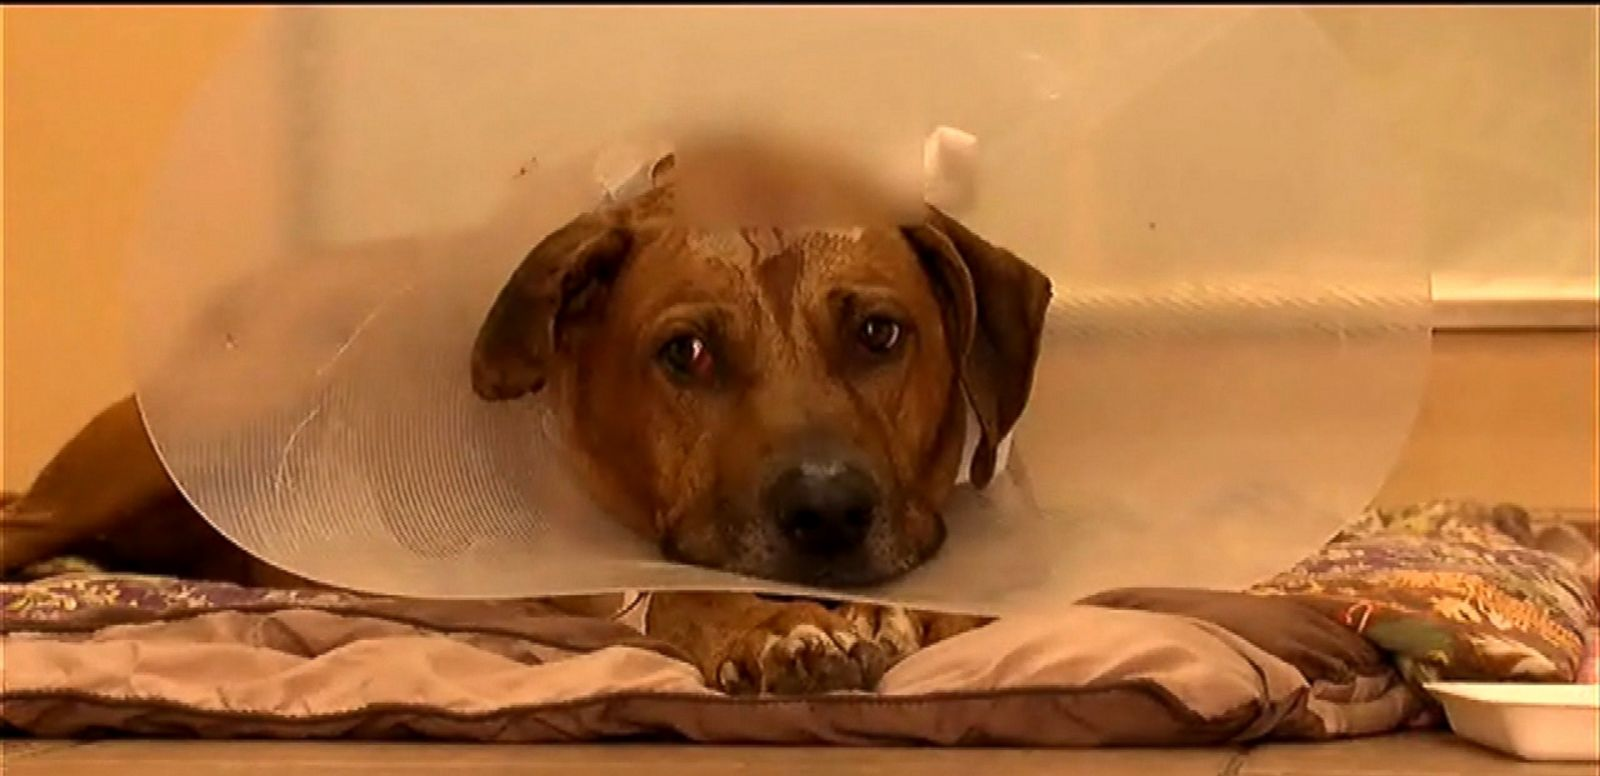 VIDEO: Doctors credit the dog's survival to his thick skull and trajectory of the bullet.